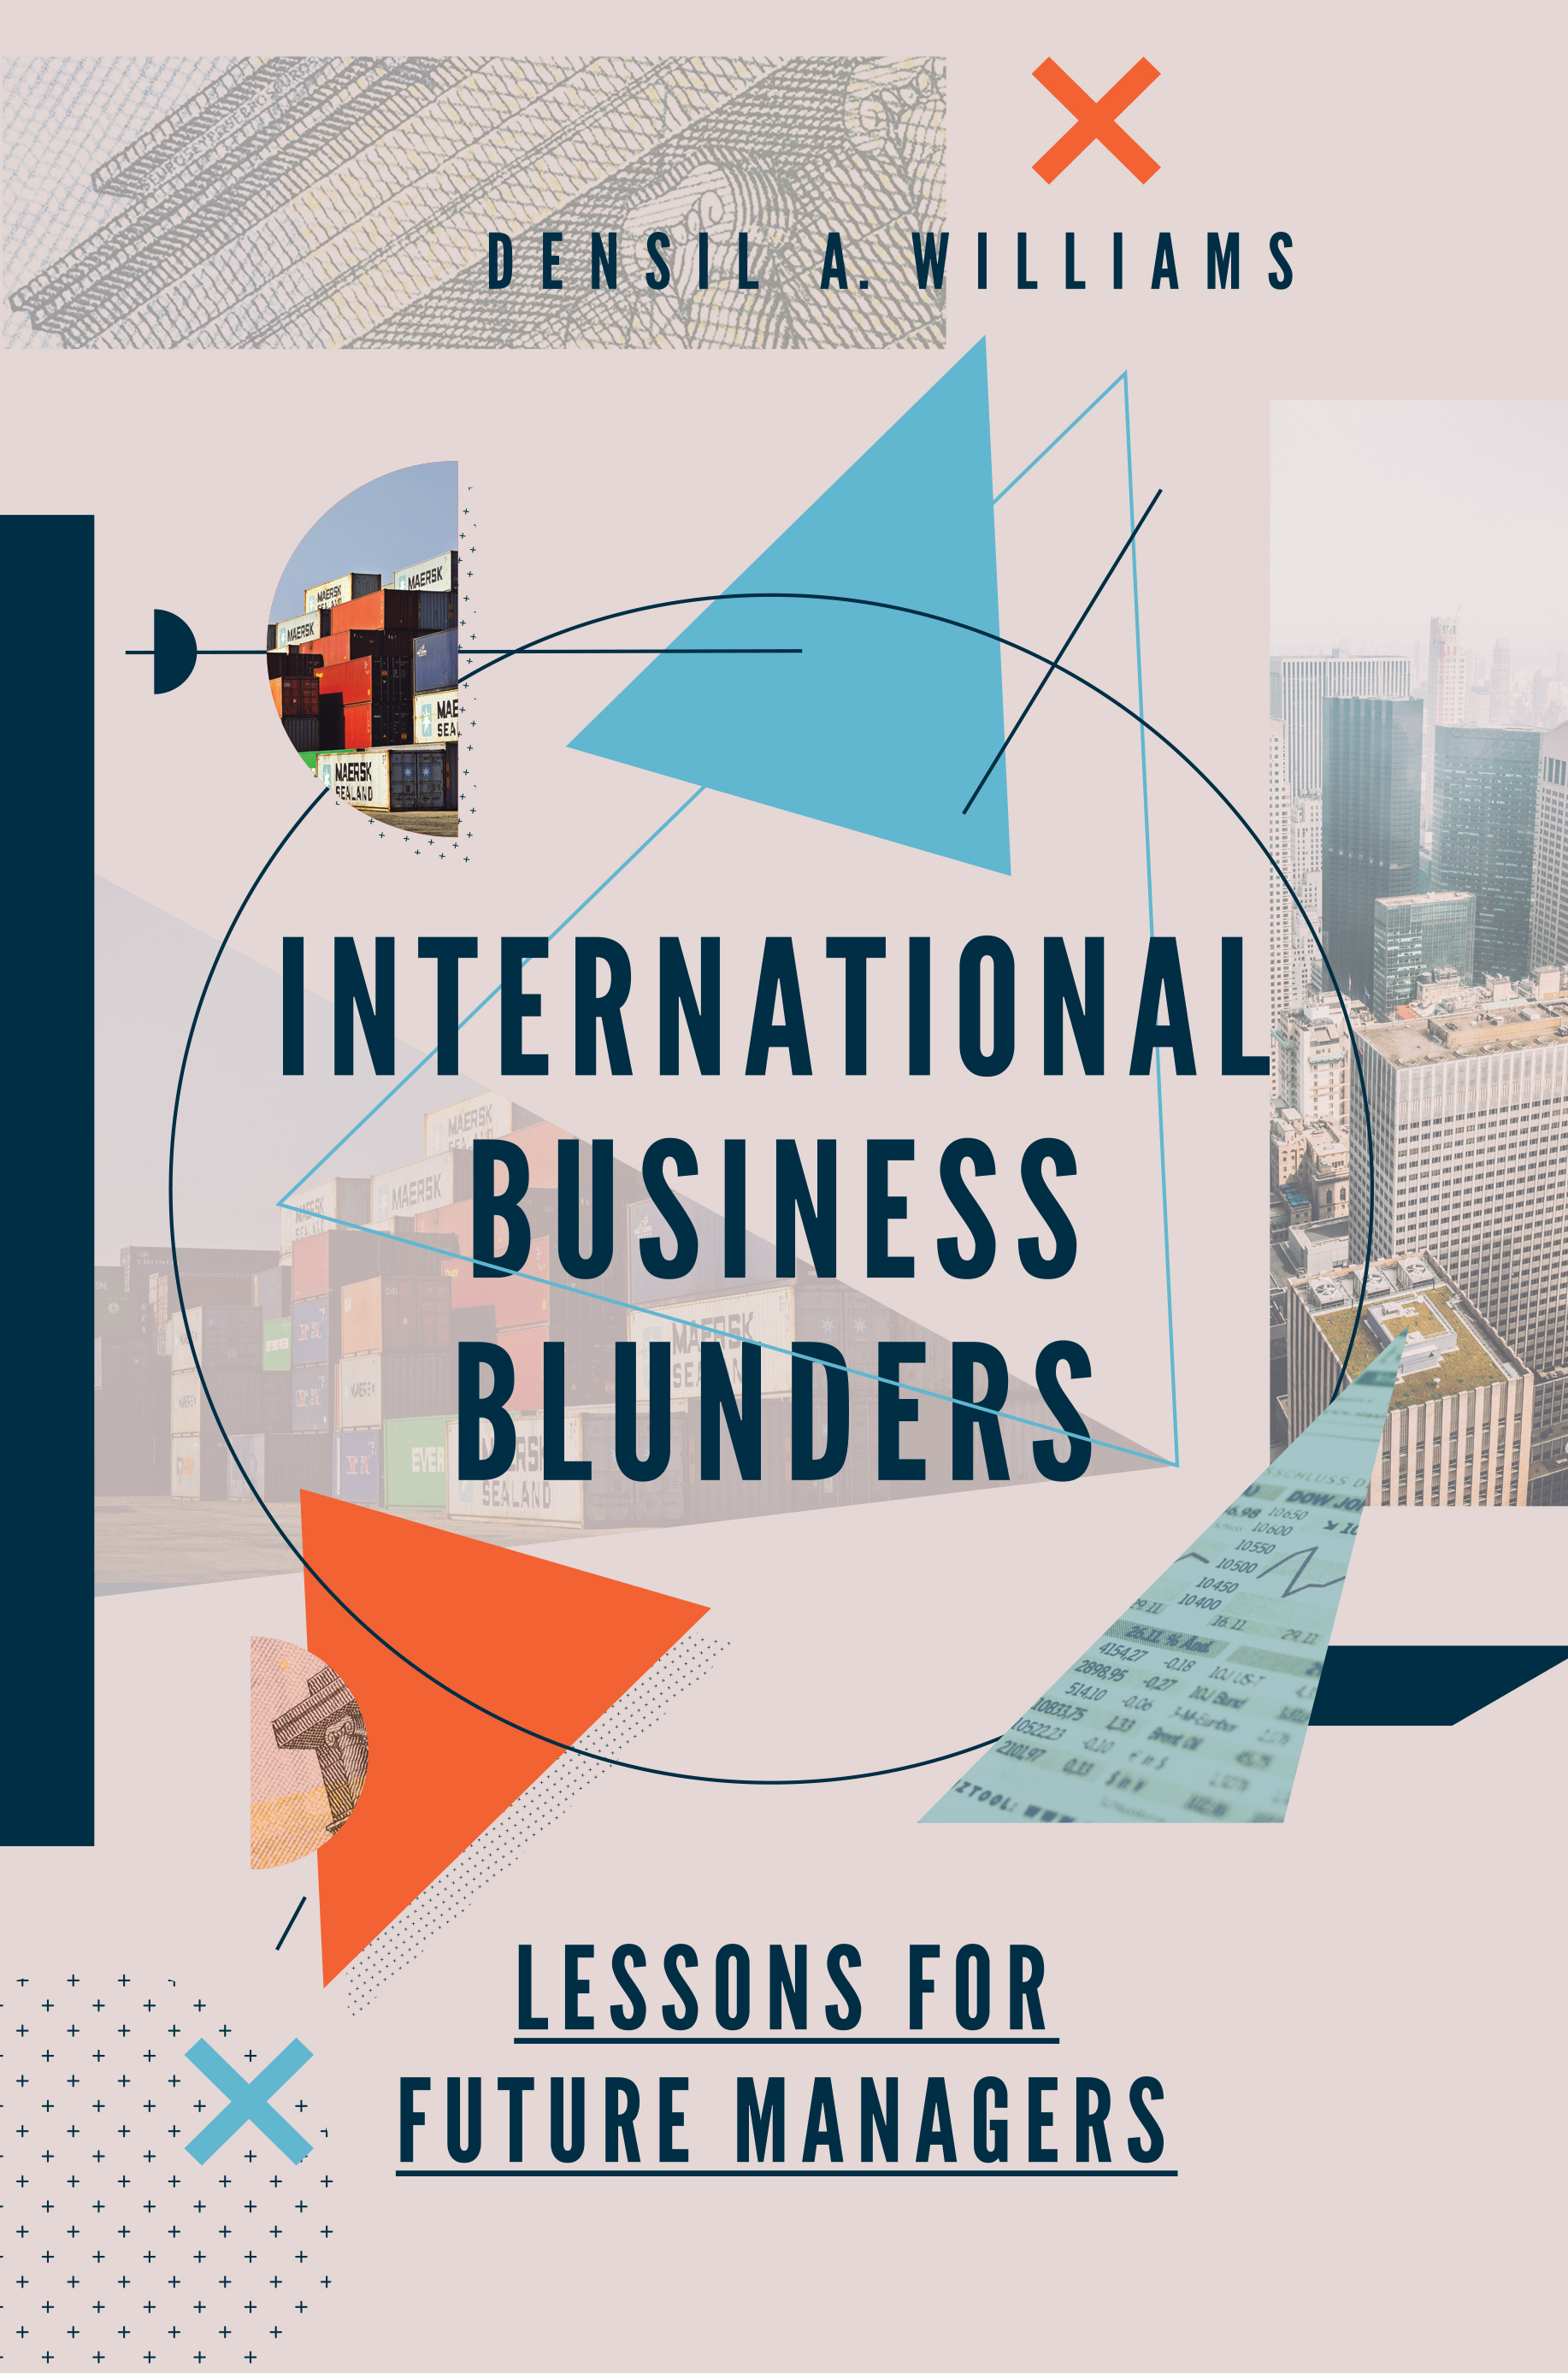 Book cover for International Business Blunders:  Lessons for Future Managers, a book by Densil A. Williams